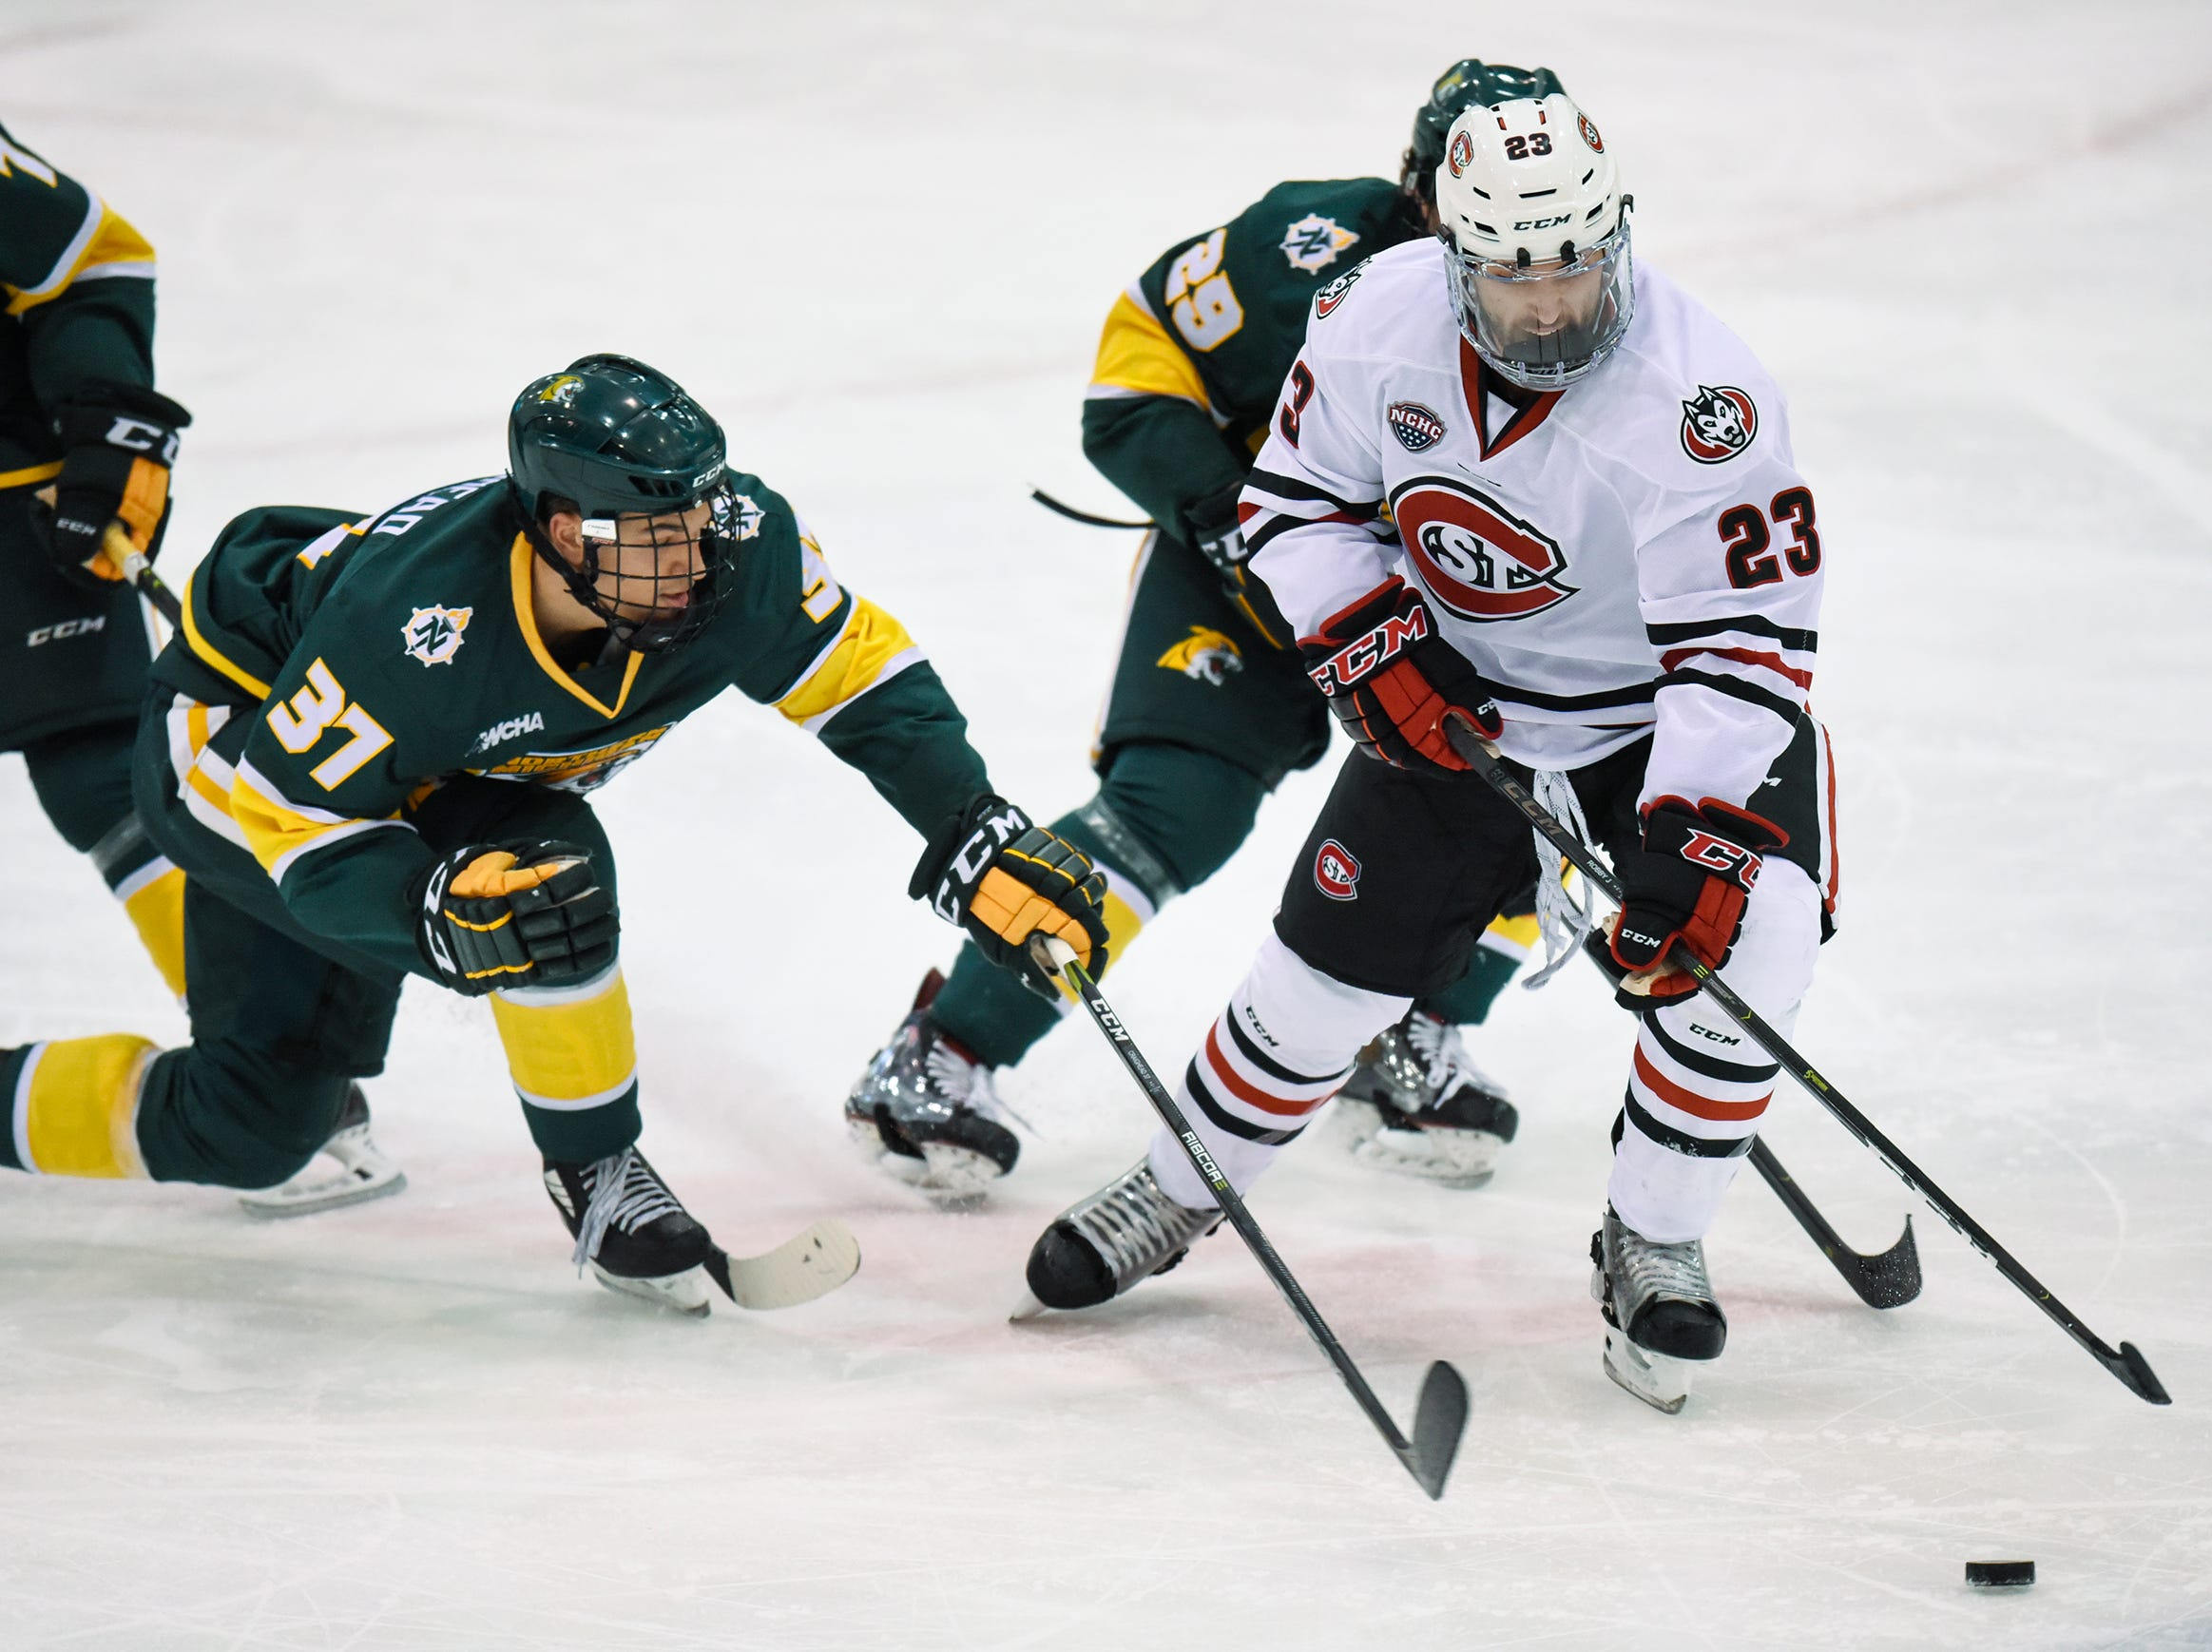 St. Cloud State's Robby Jackson tries to control the puck during the Saturday, Oct. 20, game against Northern Michigan at the Herb Brooks National Hockey Center in St. Cloud.